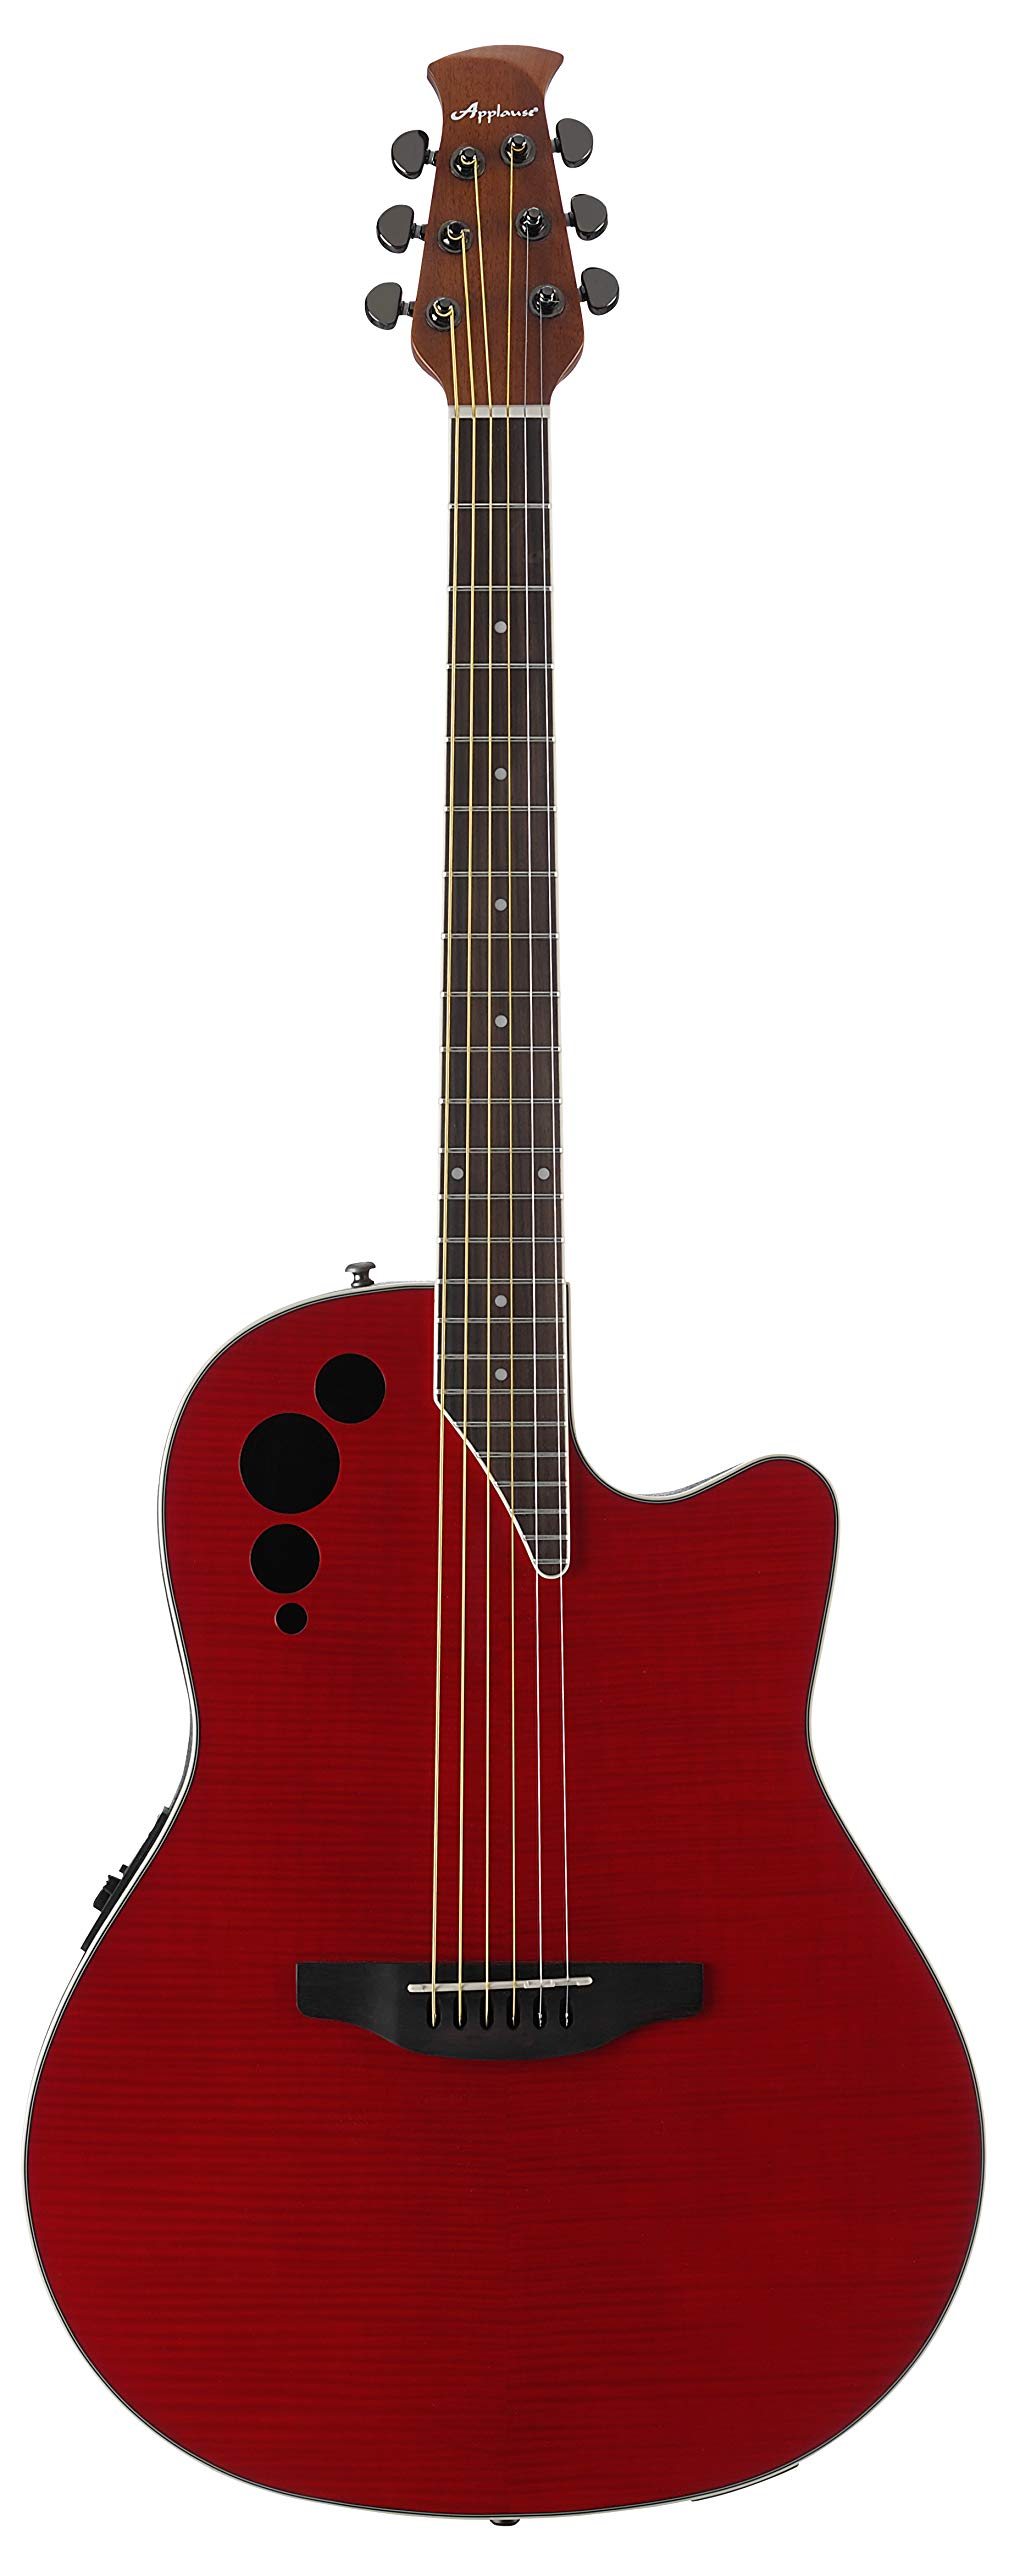 Ovation Applause 6 String Acoustic-Electric Guitar Right, Cherry Flame Mid-Depth AE44IIP-CHF